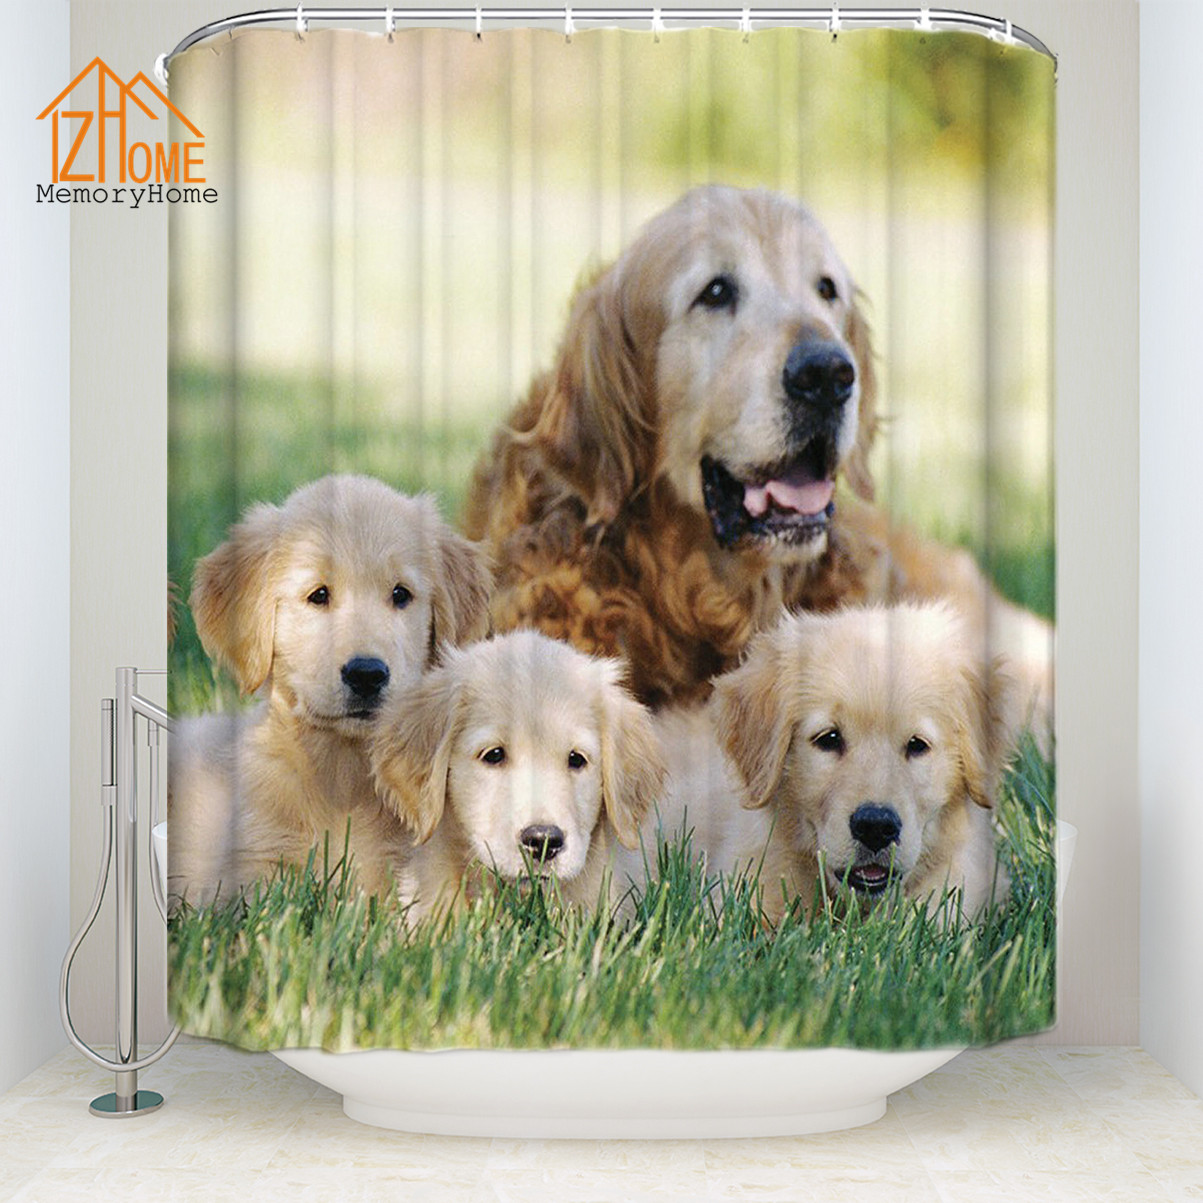 Memory Home 3d Bath Curtain for The Bathroom Dog Bath Screen Fabric <font><b>Kids</b></font> Funny Animal Shower Curtain with Hooks Home Decoration